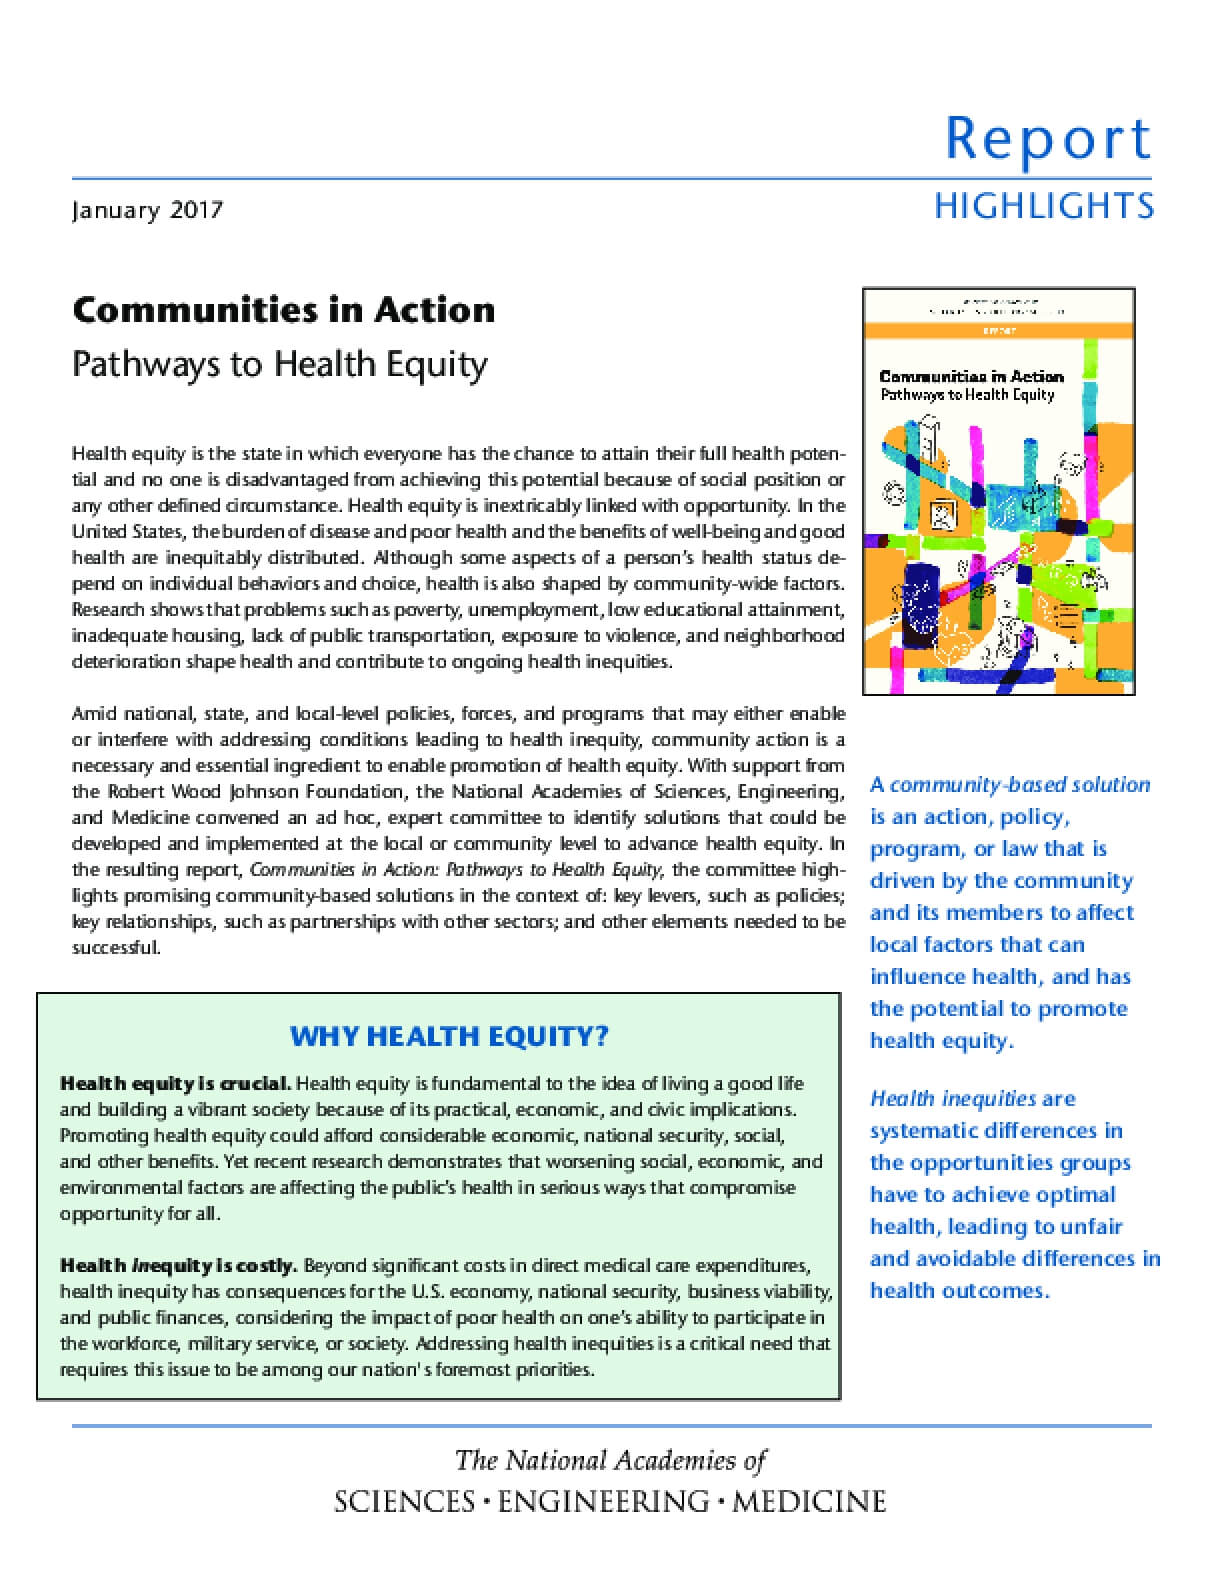 Communities in Action: Pathways to Health Equity